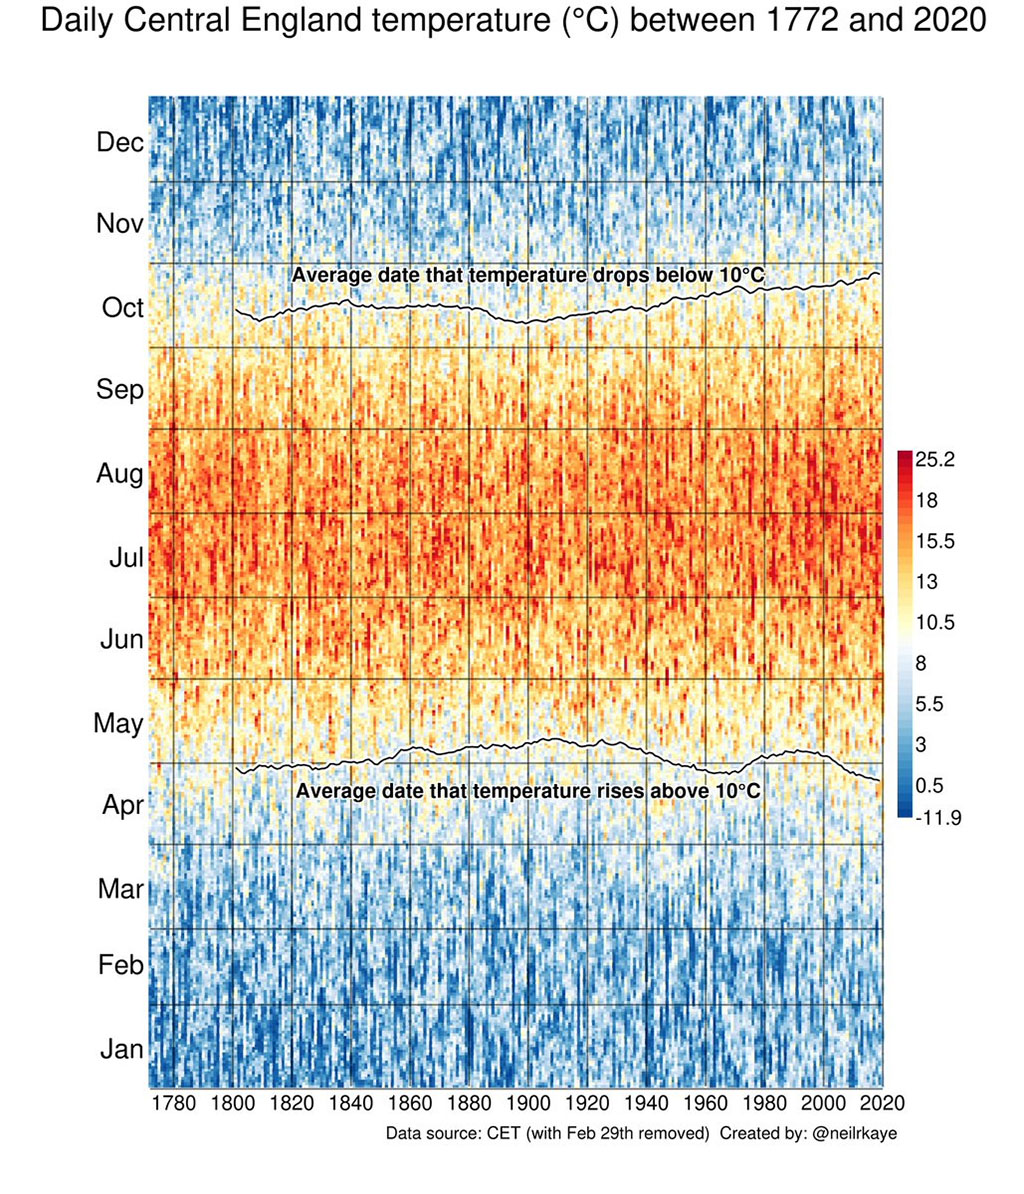 Graphic of rising temperatures over time